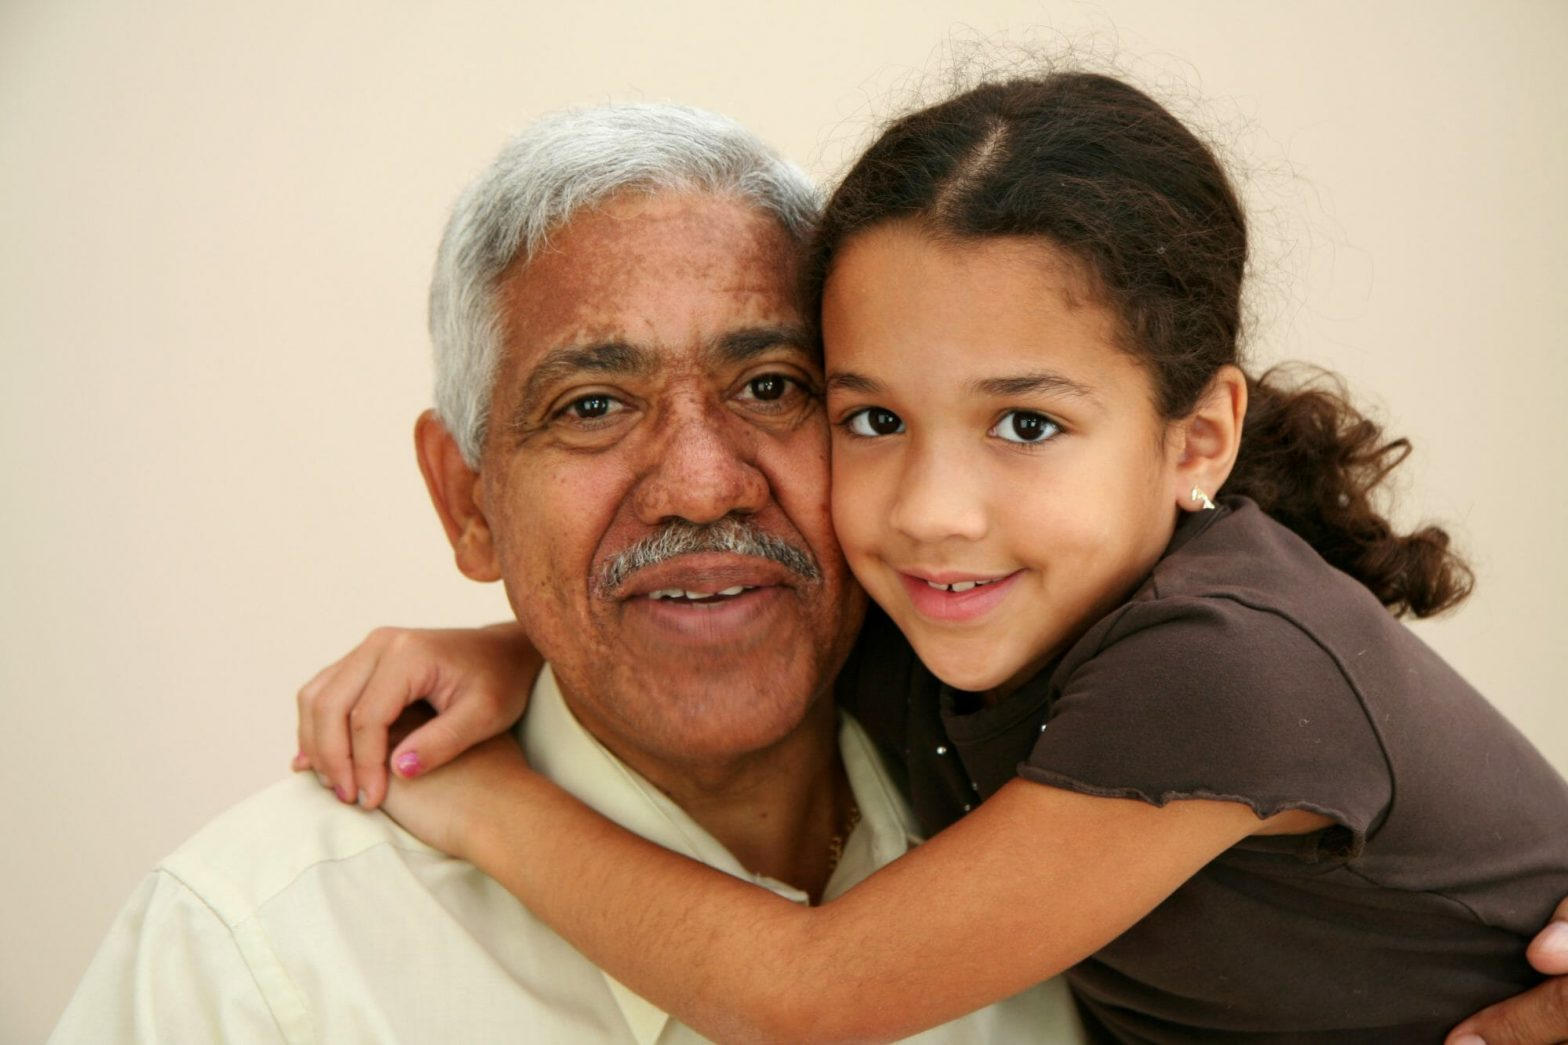 Child with her grandfather